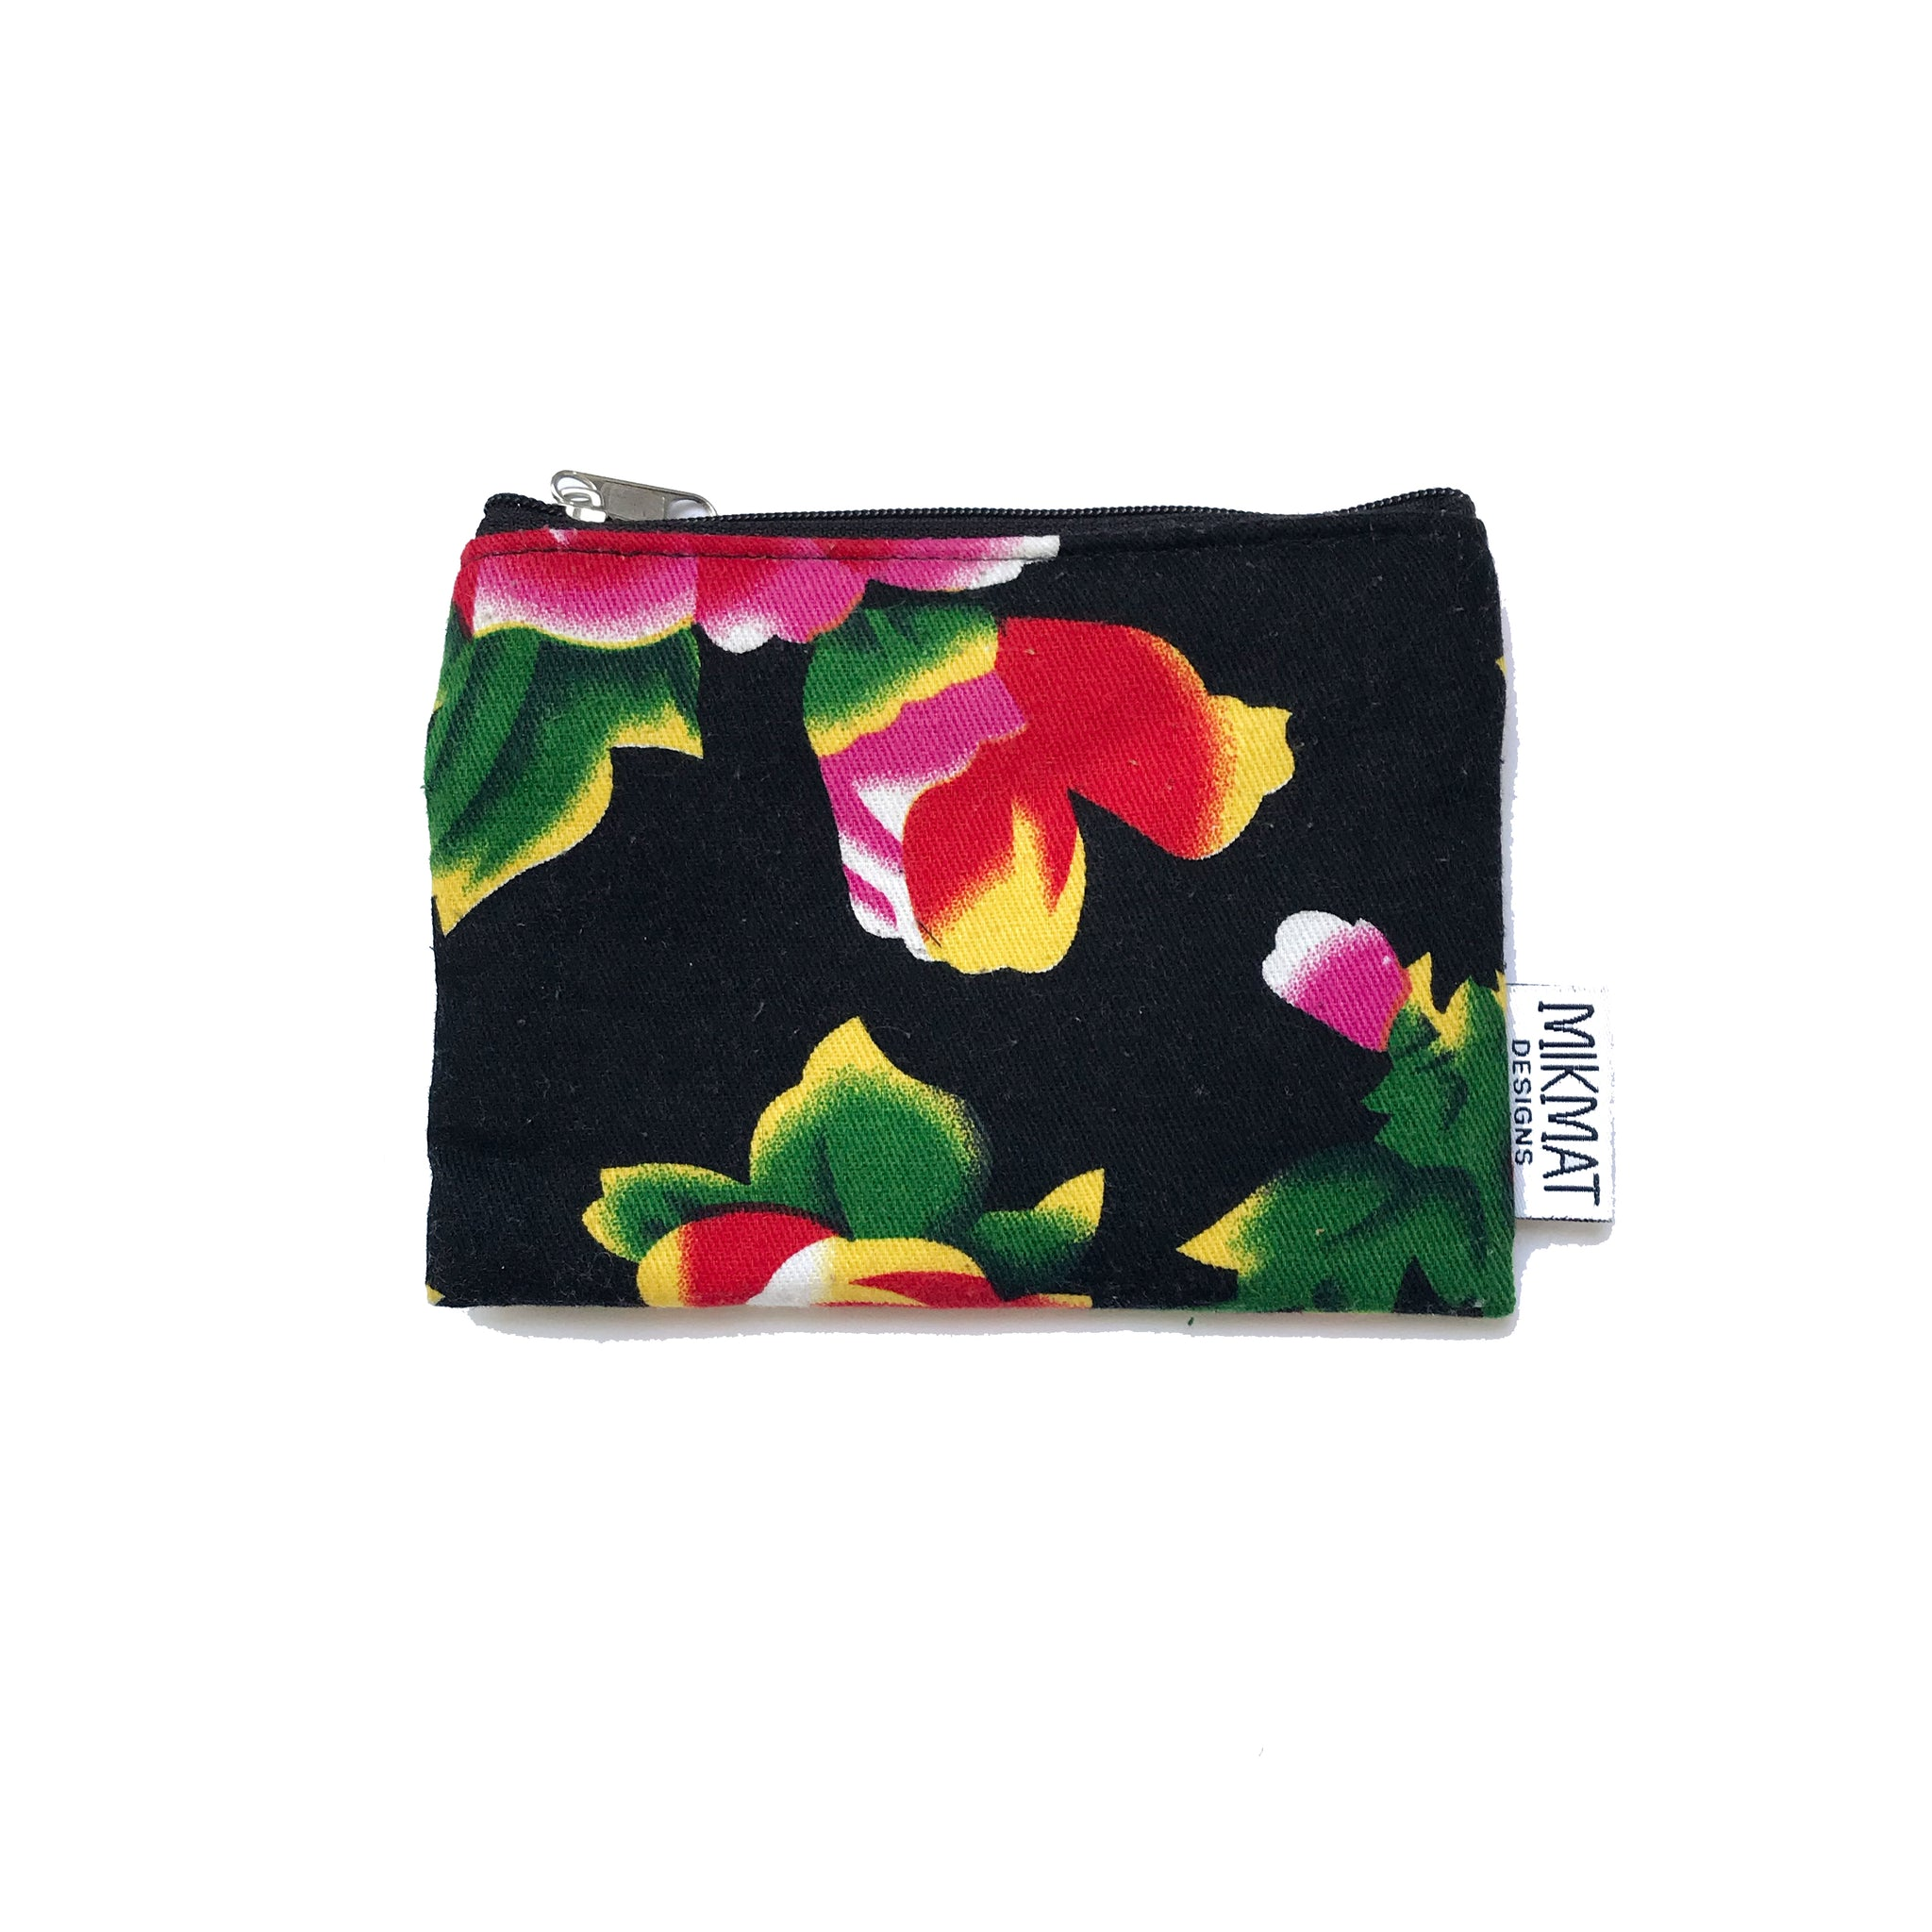 Small Pouch in Black Peacock fabric - Mikmat Designs